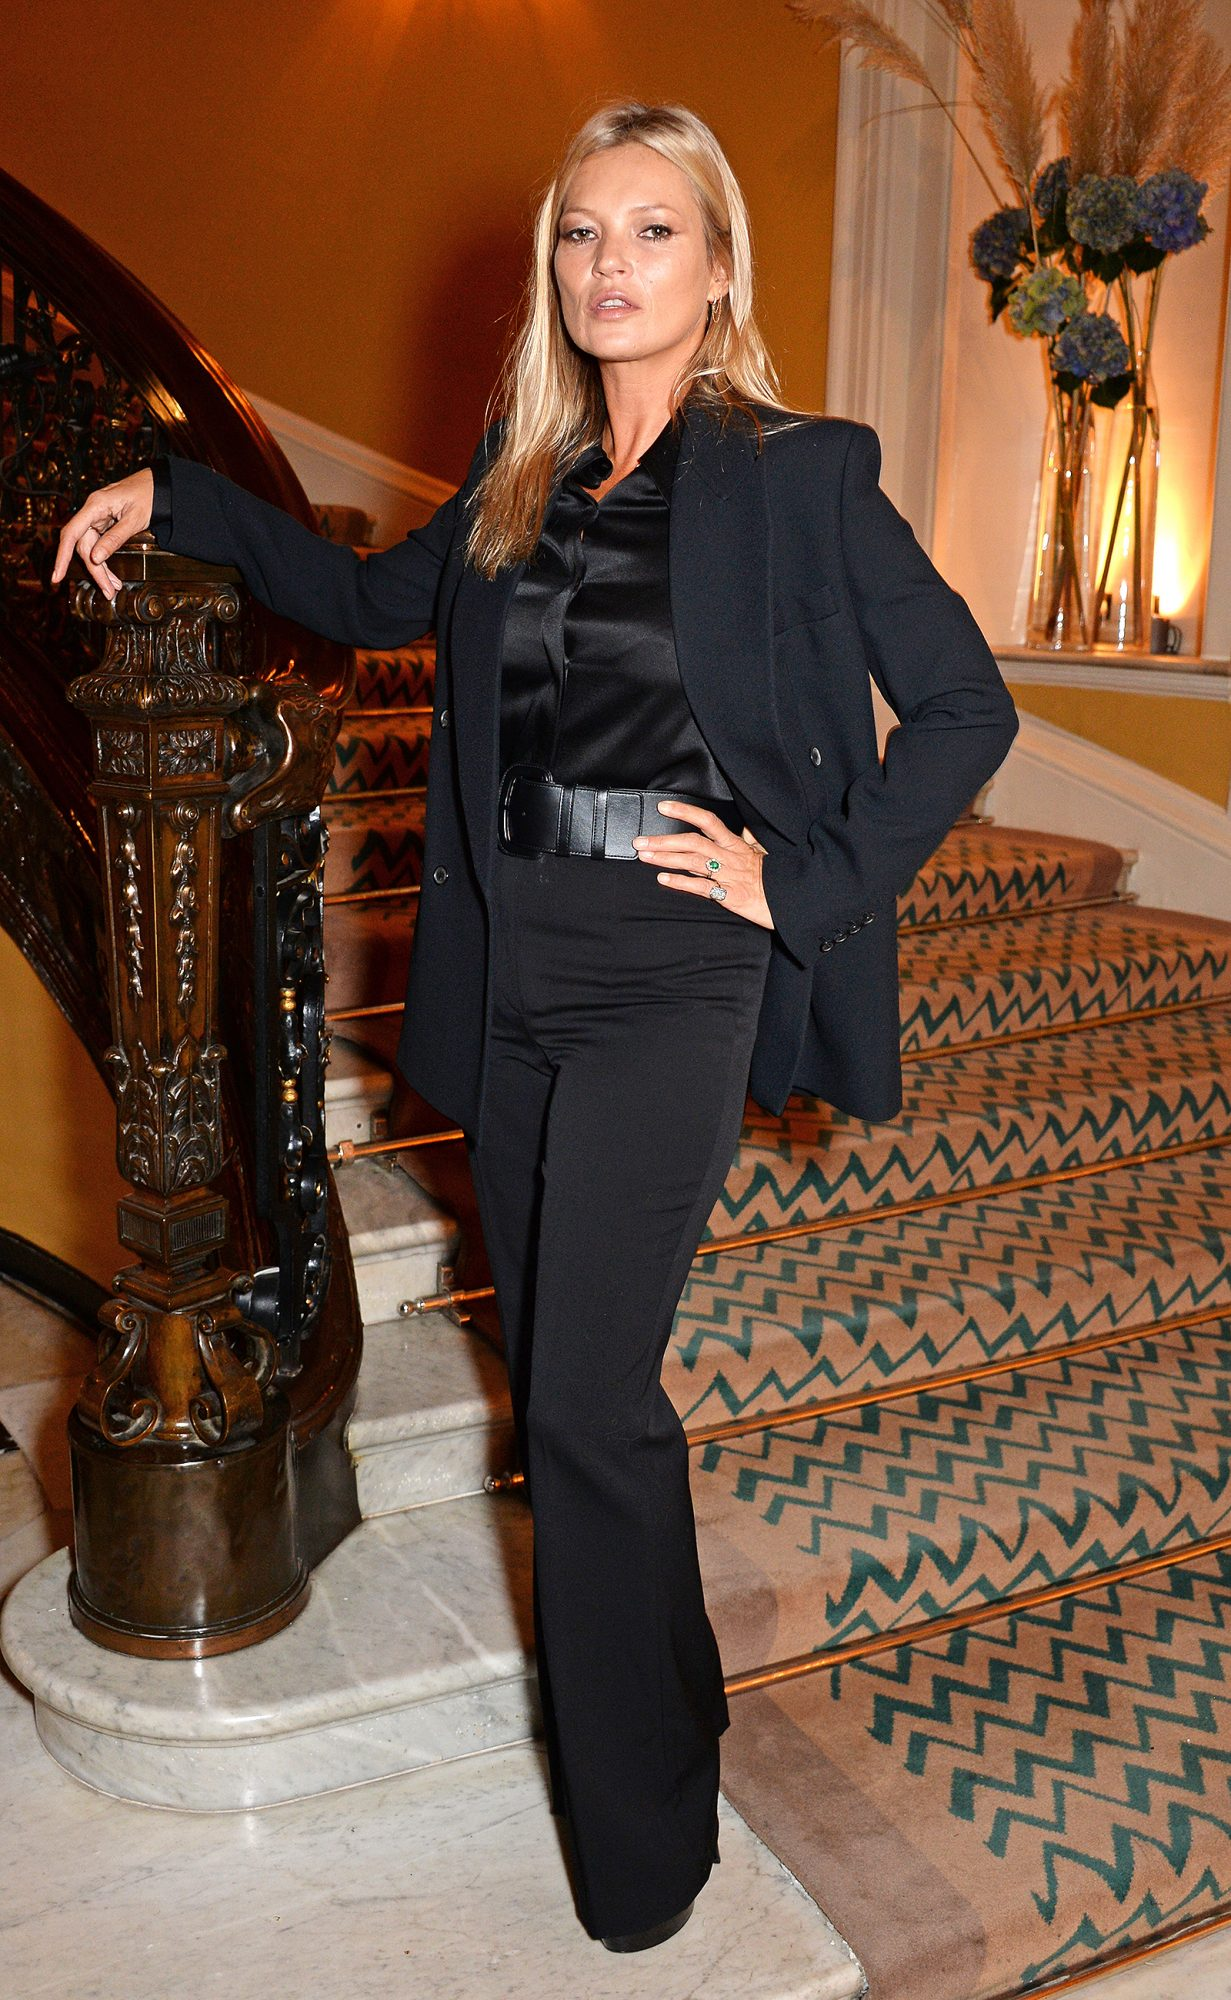 Michael Kors Celebrates David Downton Collaboration With Cocktail Party In London